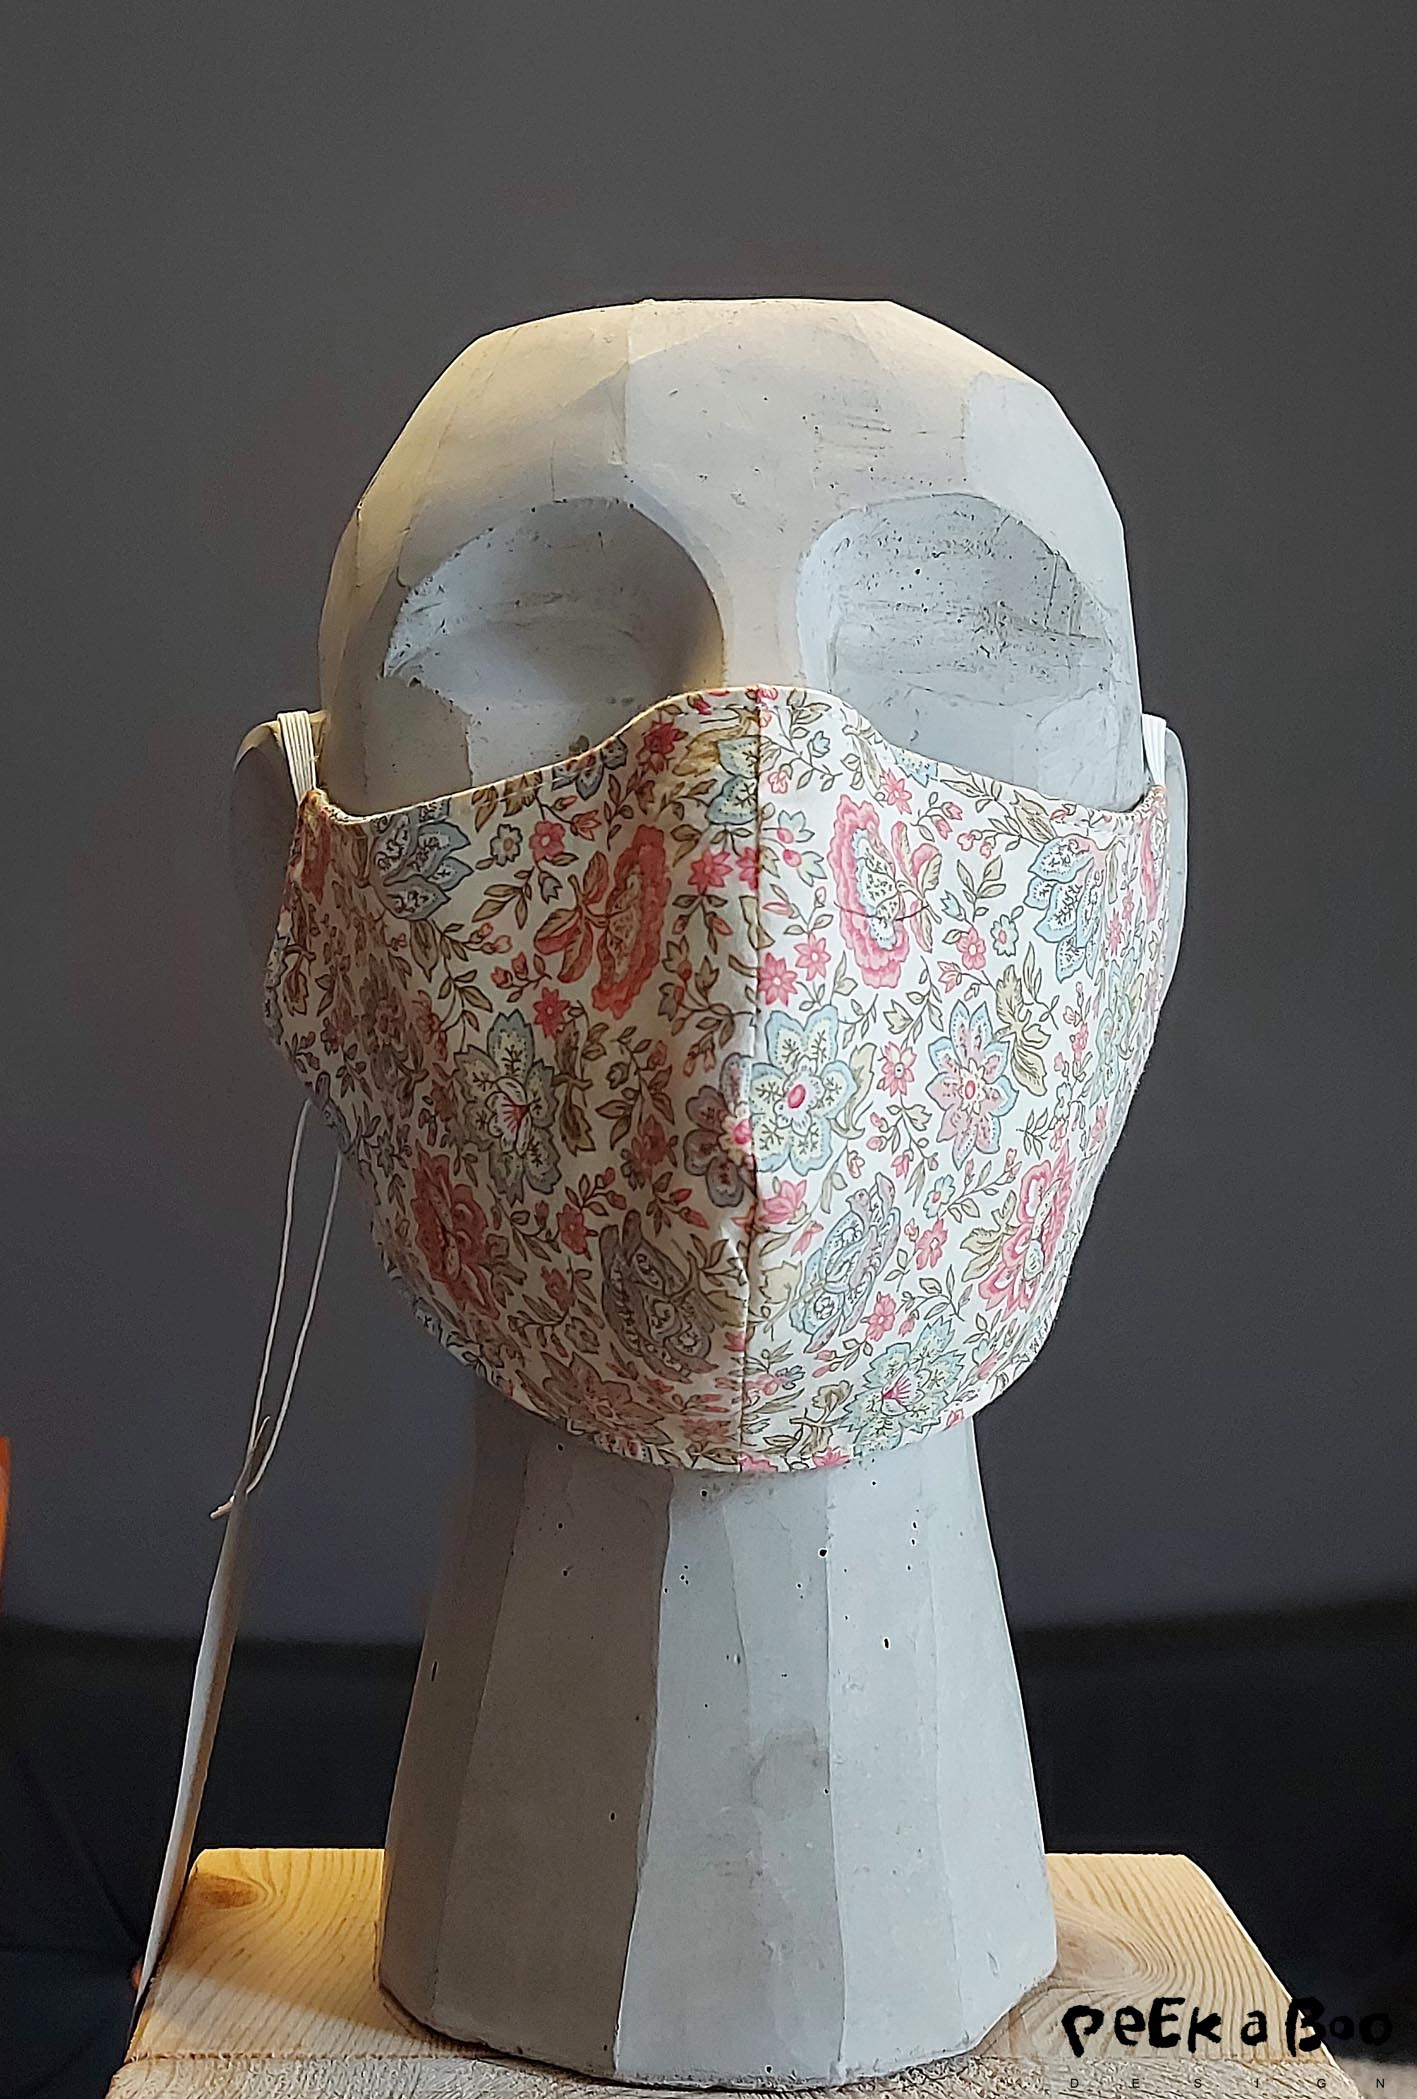 My favorite mask at the moment is made of Liberty fabric that used to be a pair of loose pants.